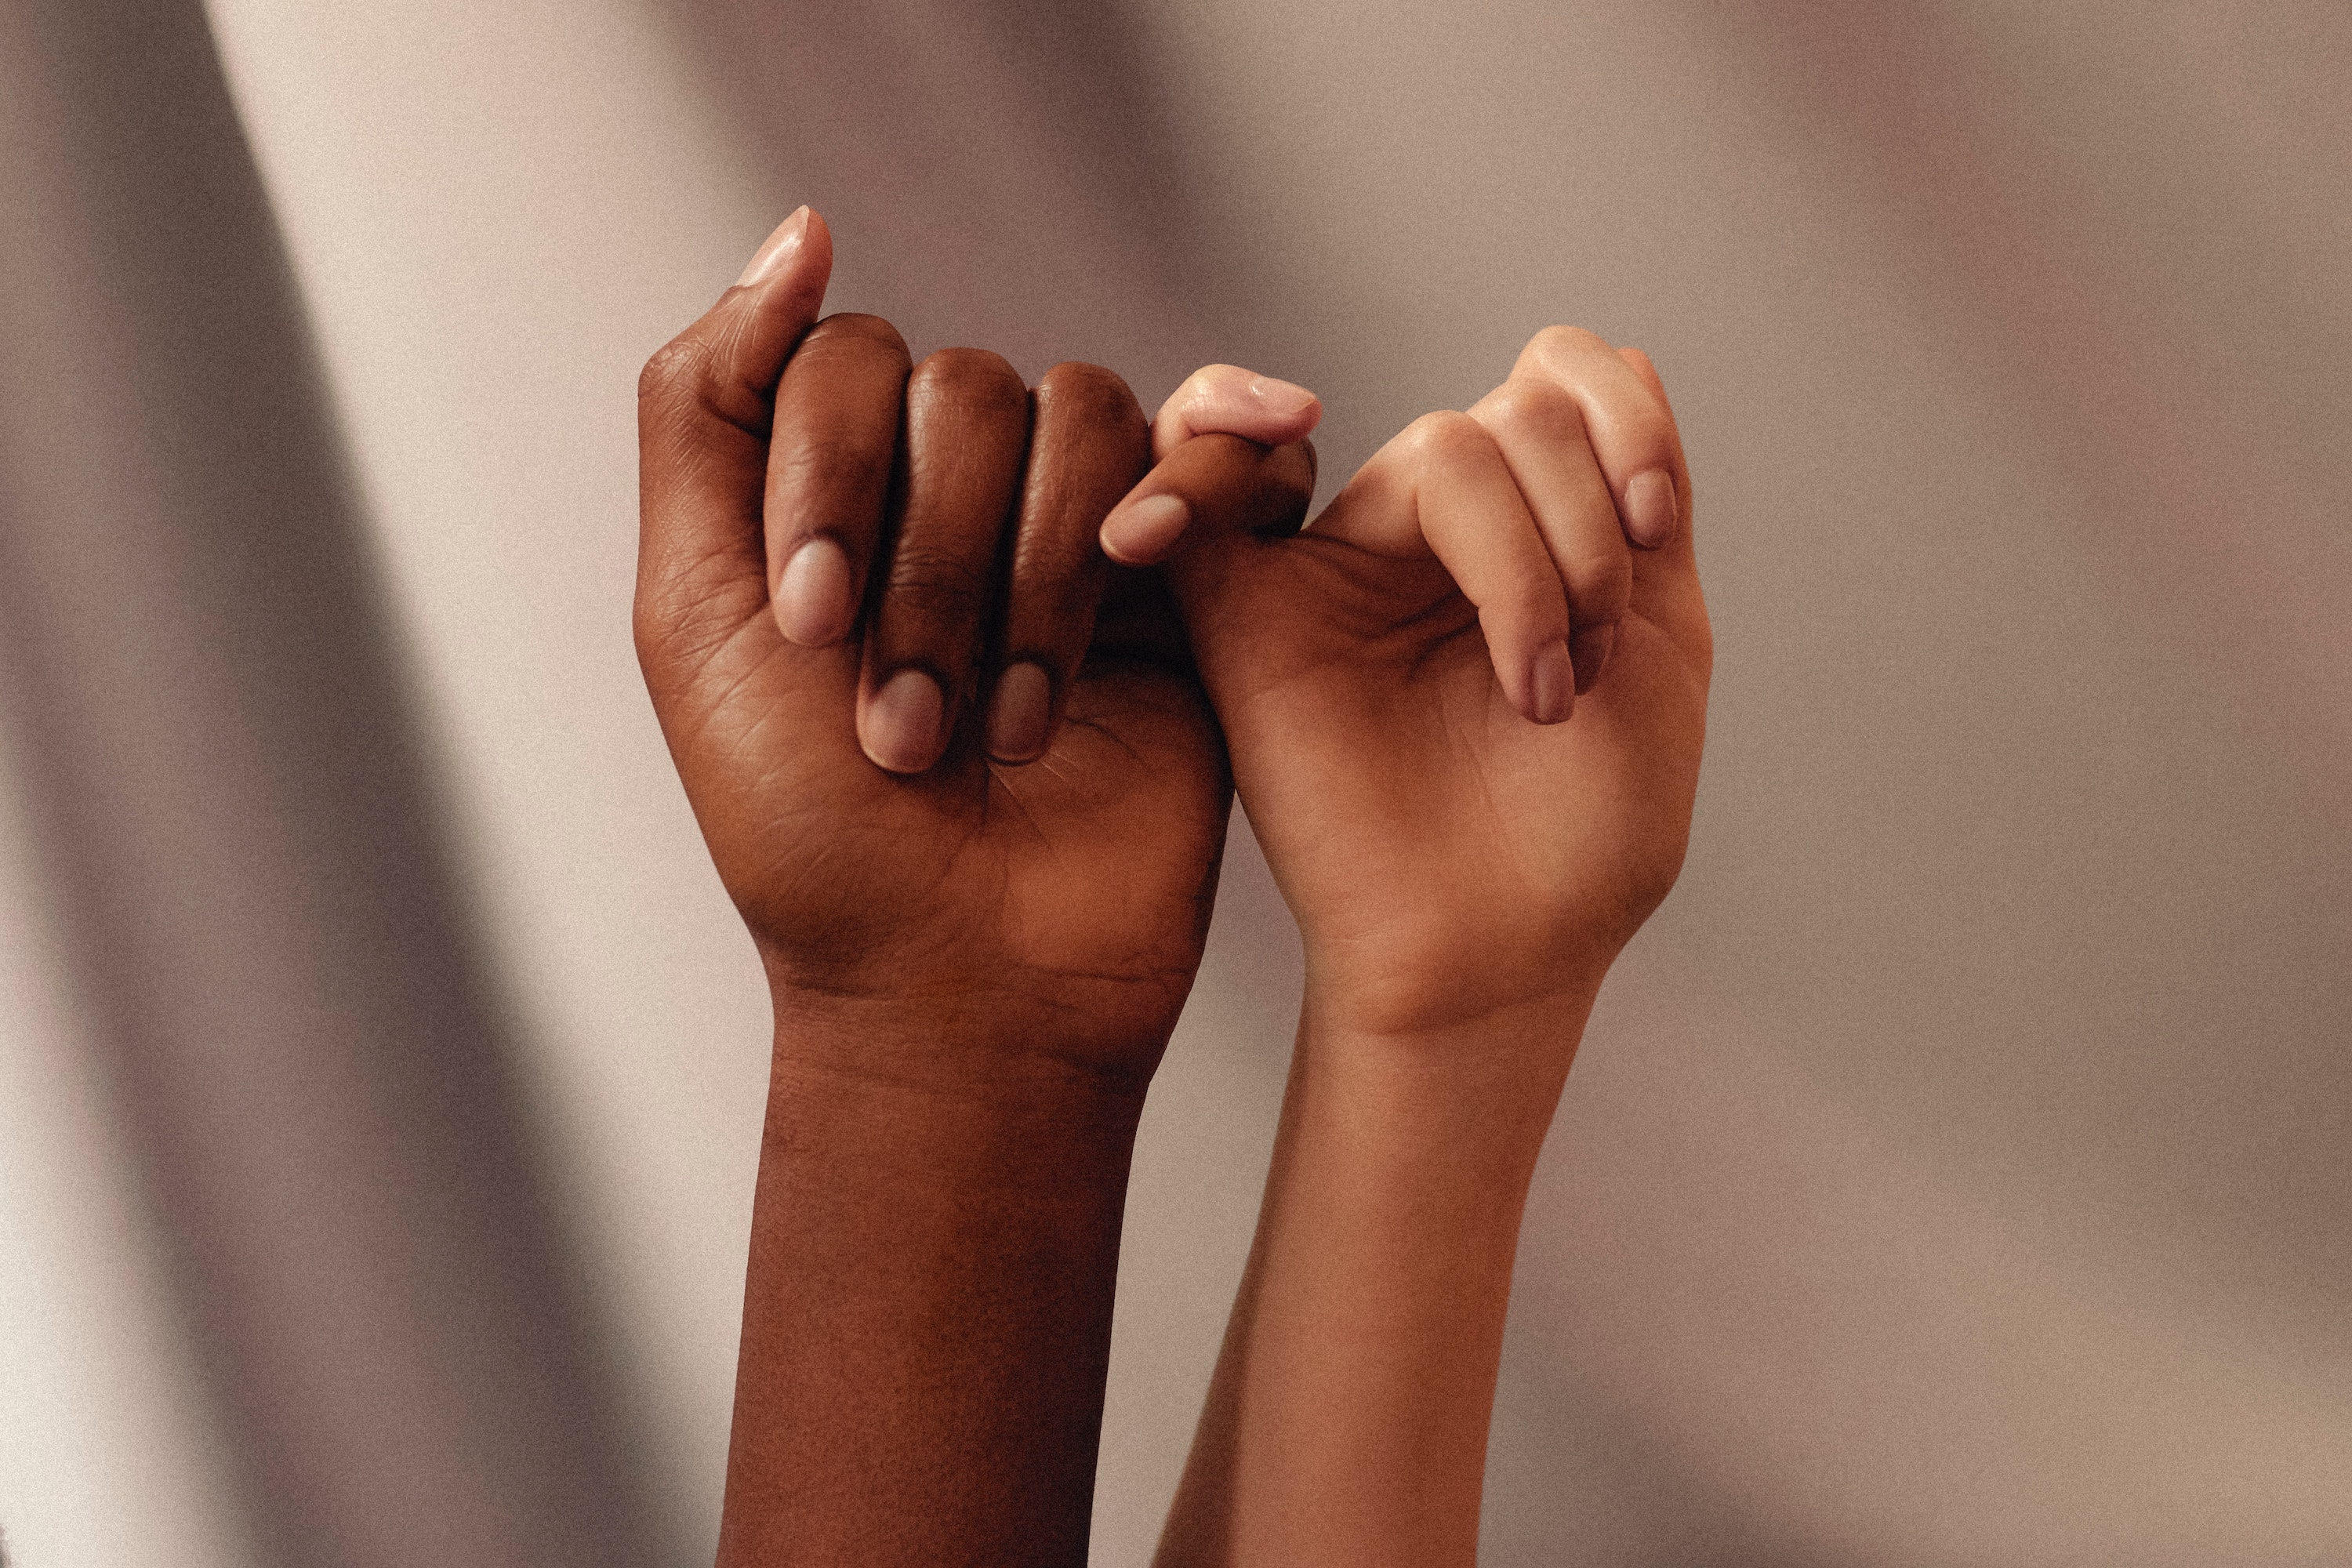 BIPOC women's hands with linked fingers